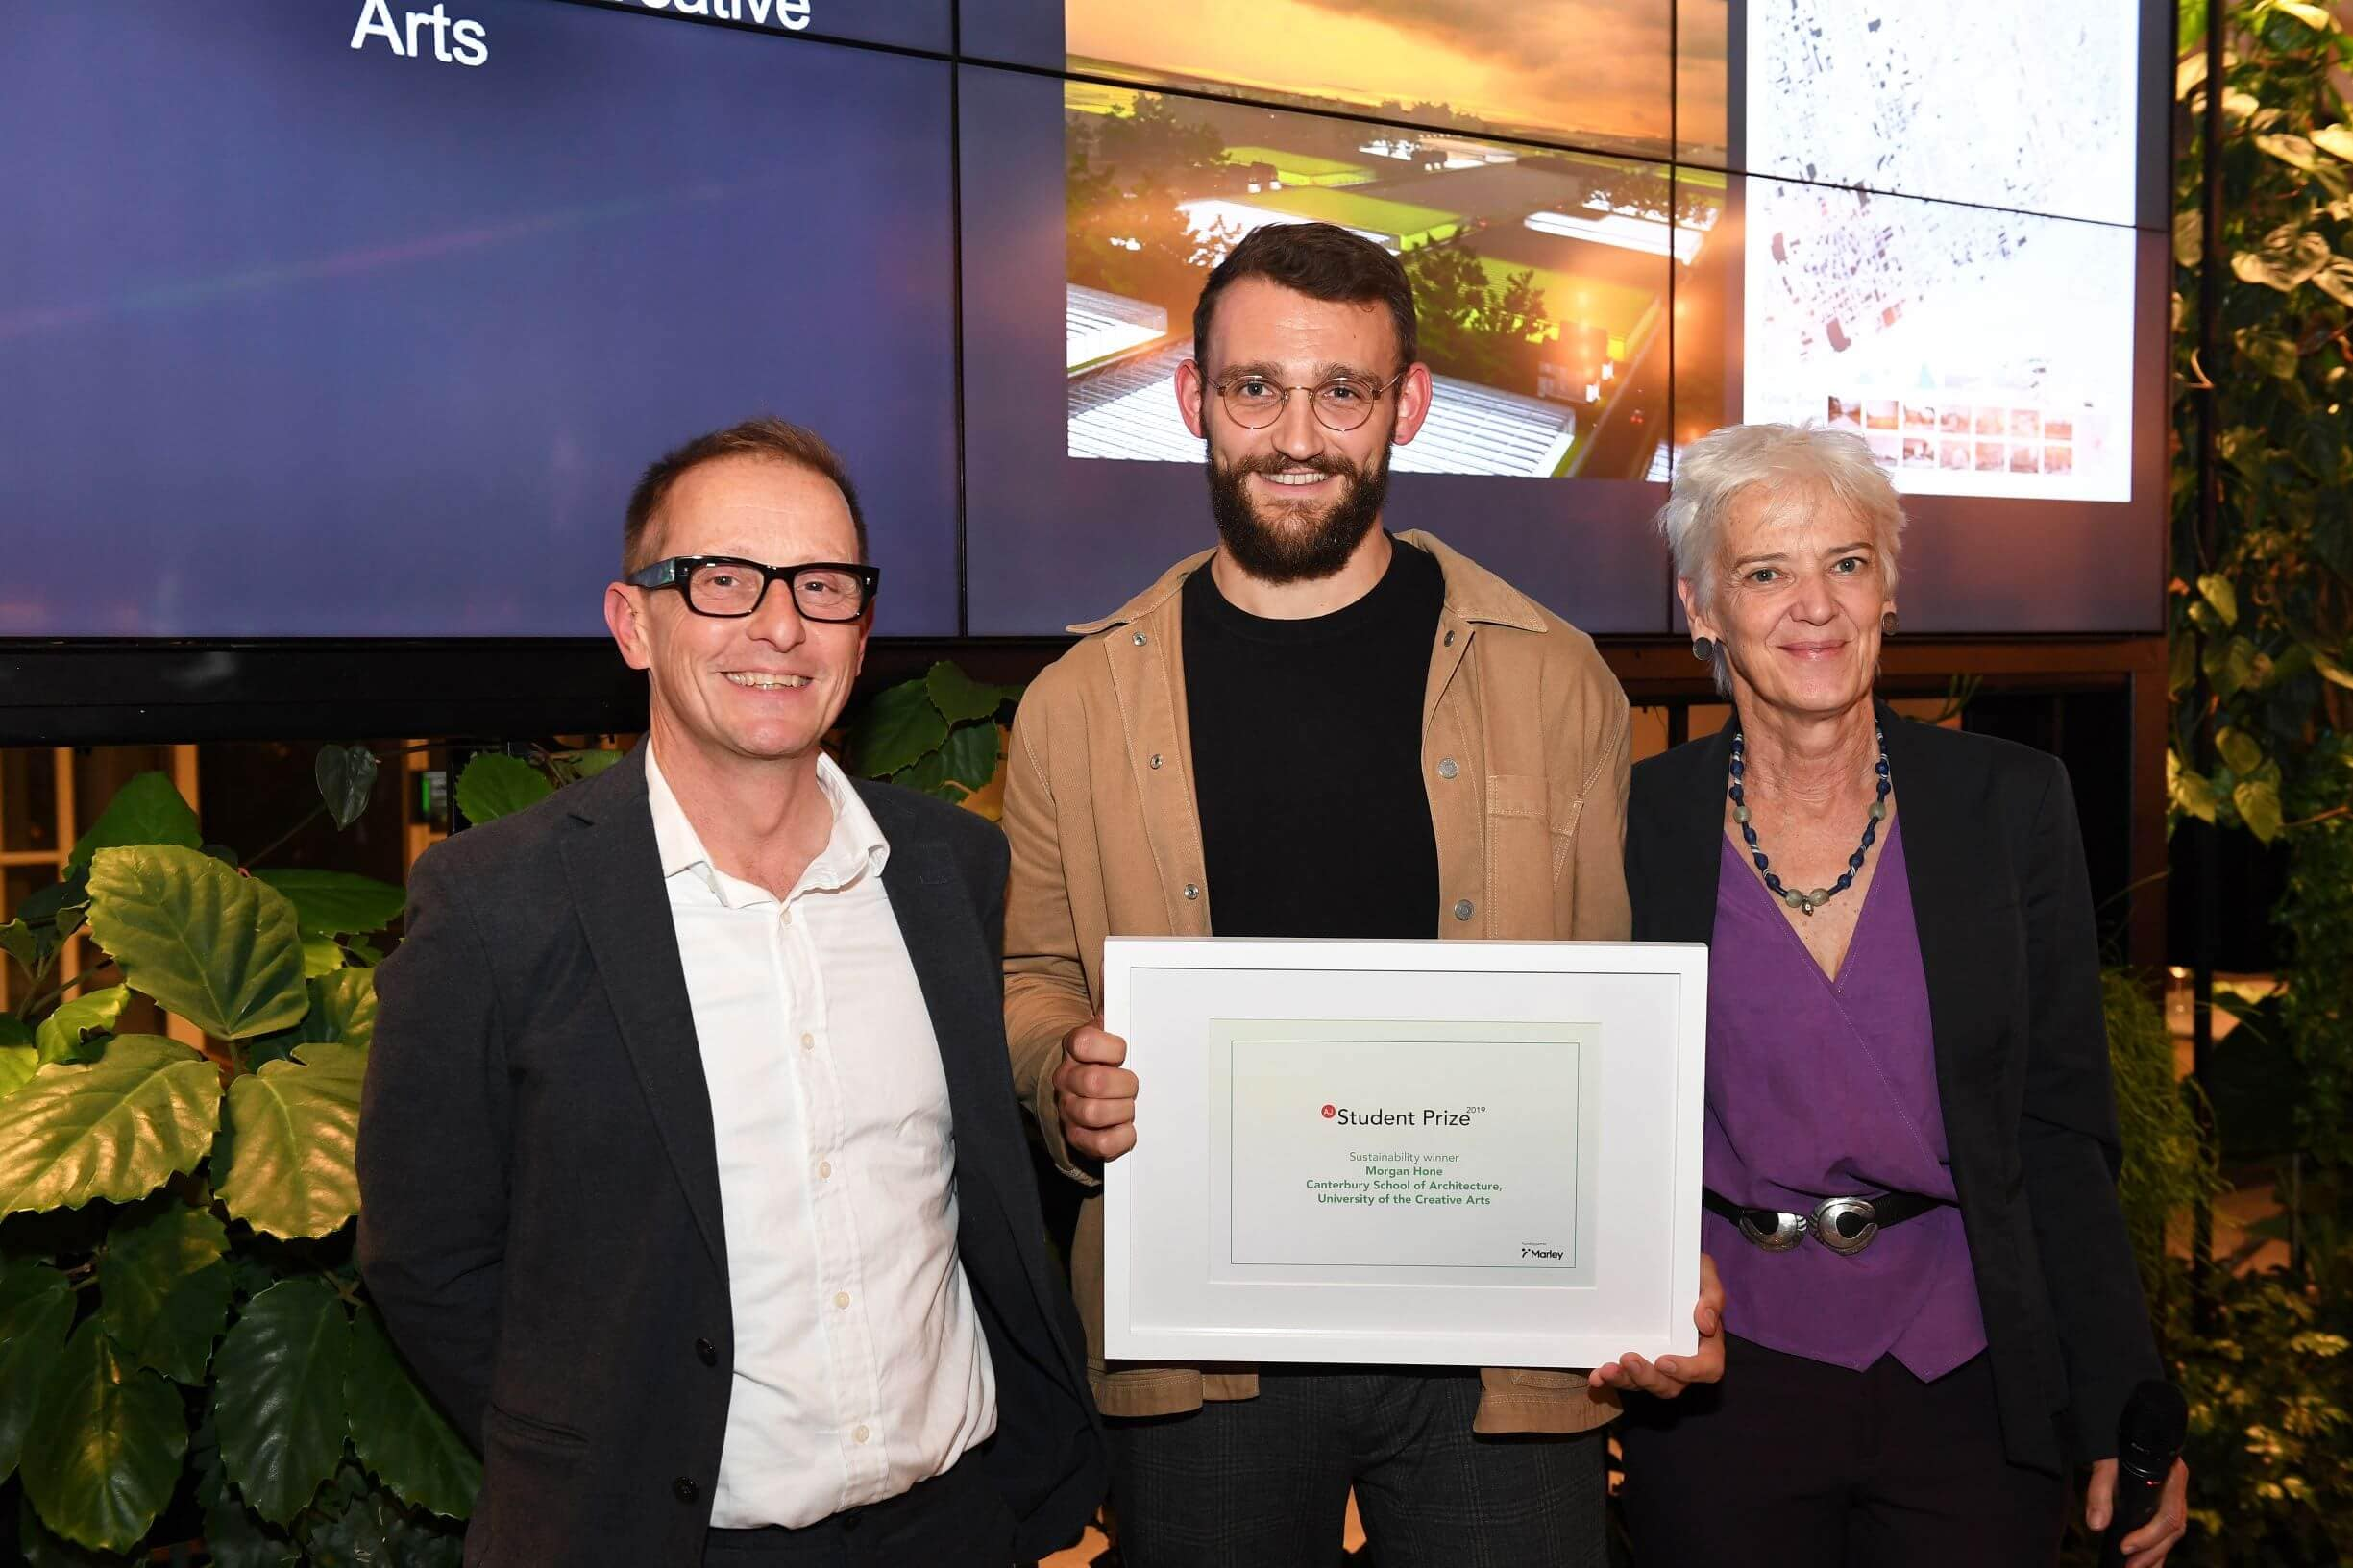 AJ Student Prize Sustainability Award Winner 2019